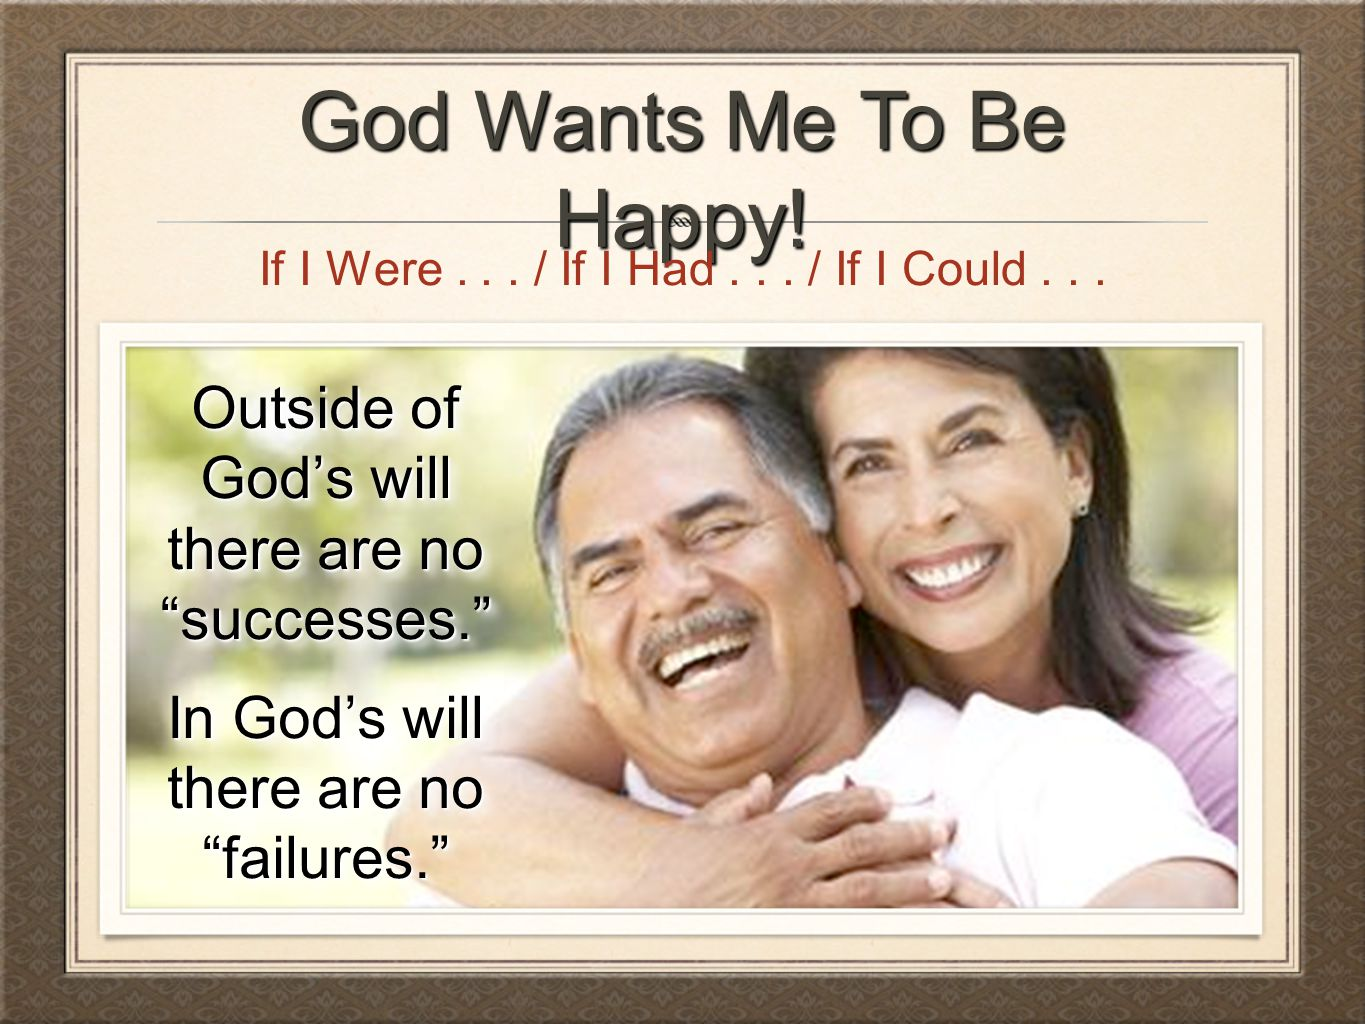 God Wants Me To Be Happy! If I Were . . . / If I Had . . . / If I Could . . . Outside of God's will there are no successes.